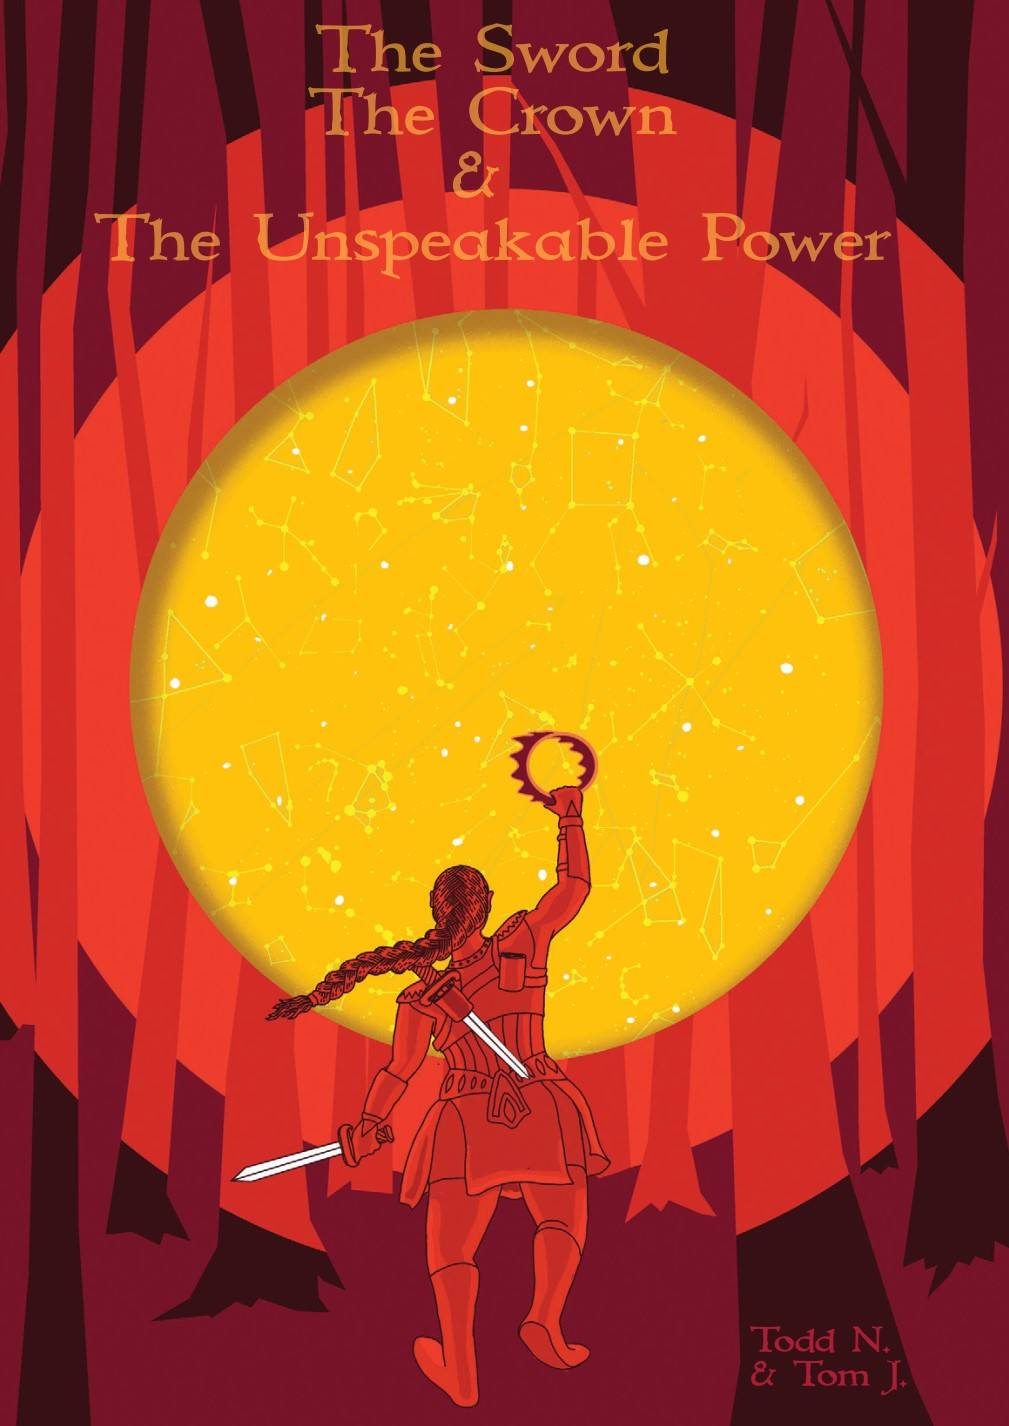 The Sword, The Crown, and The Unspeakable Power Review